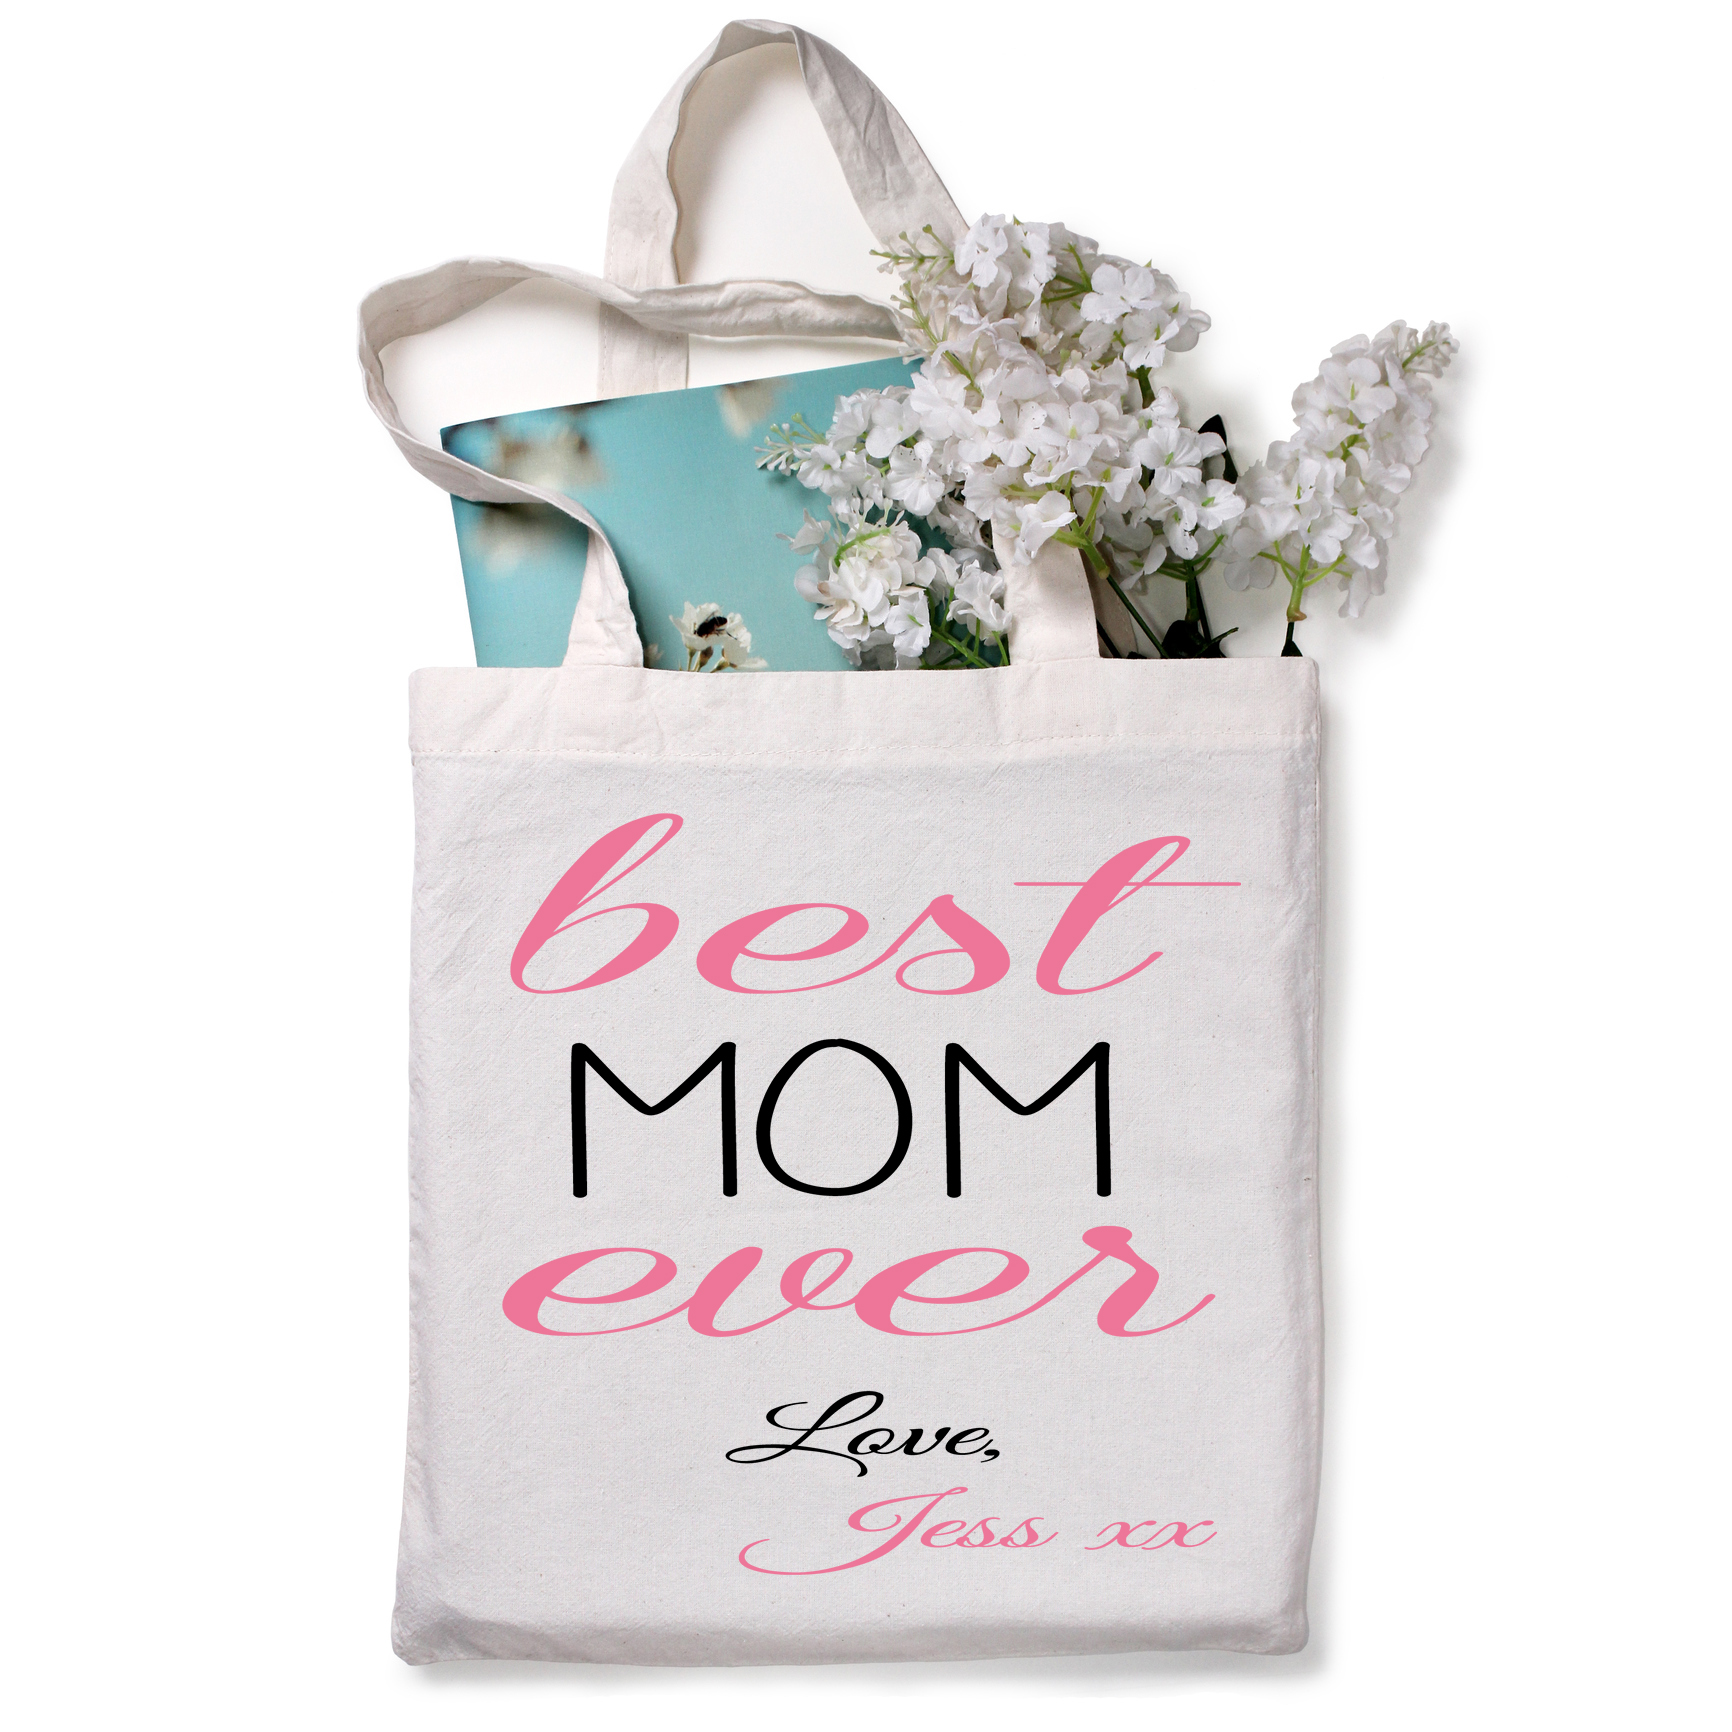 Personalized best mom ever tote bag gift ideas for moms